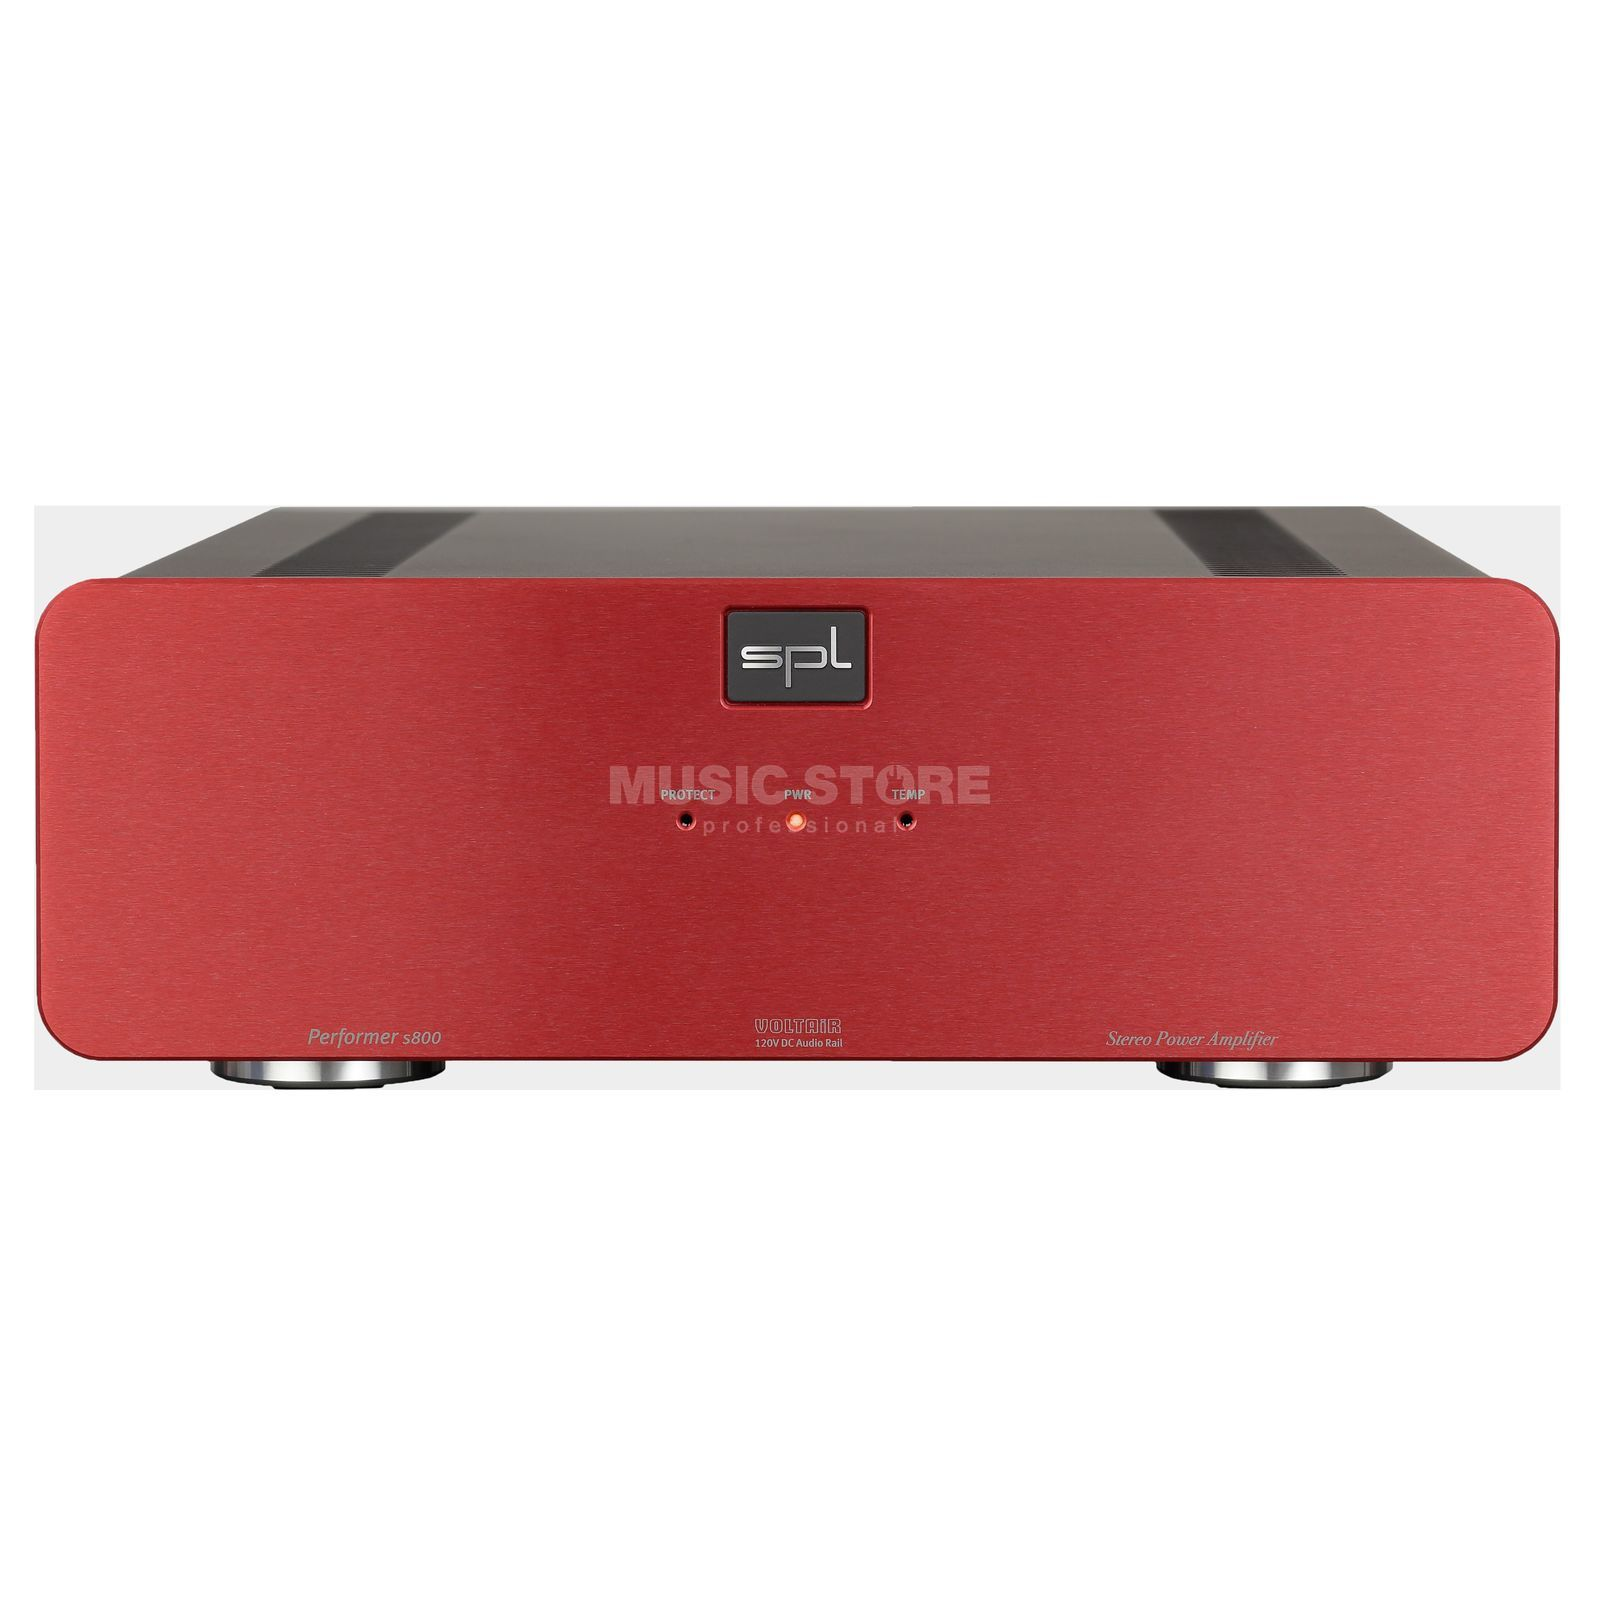 SPL Electronics Pro-Fi Performer S800 red High-End Stereo Endstufe Produktbillede